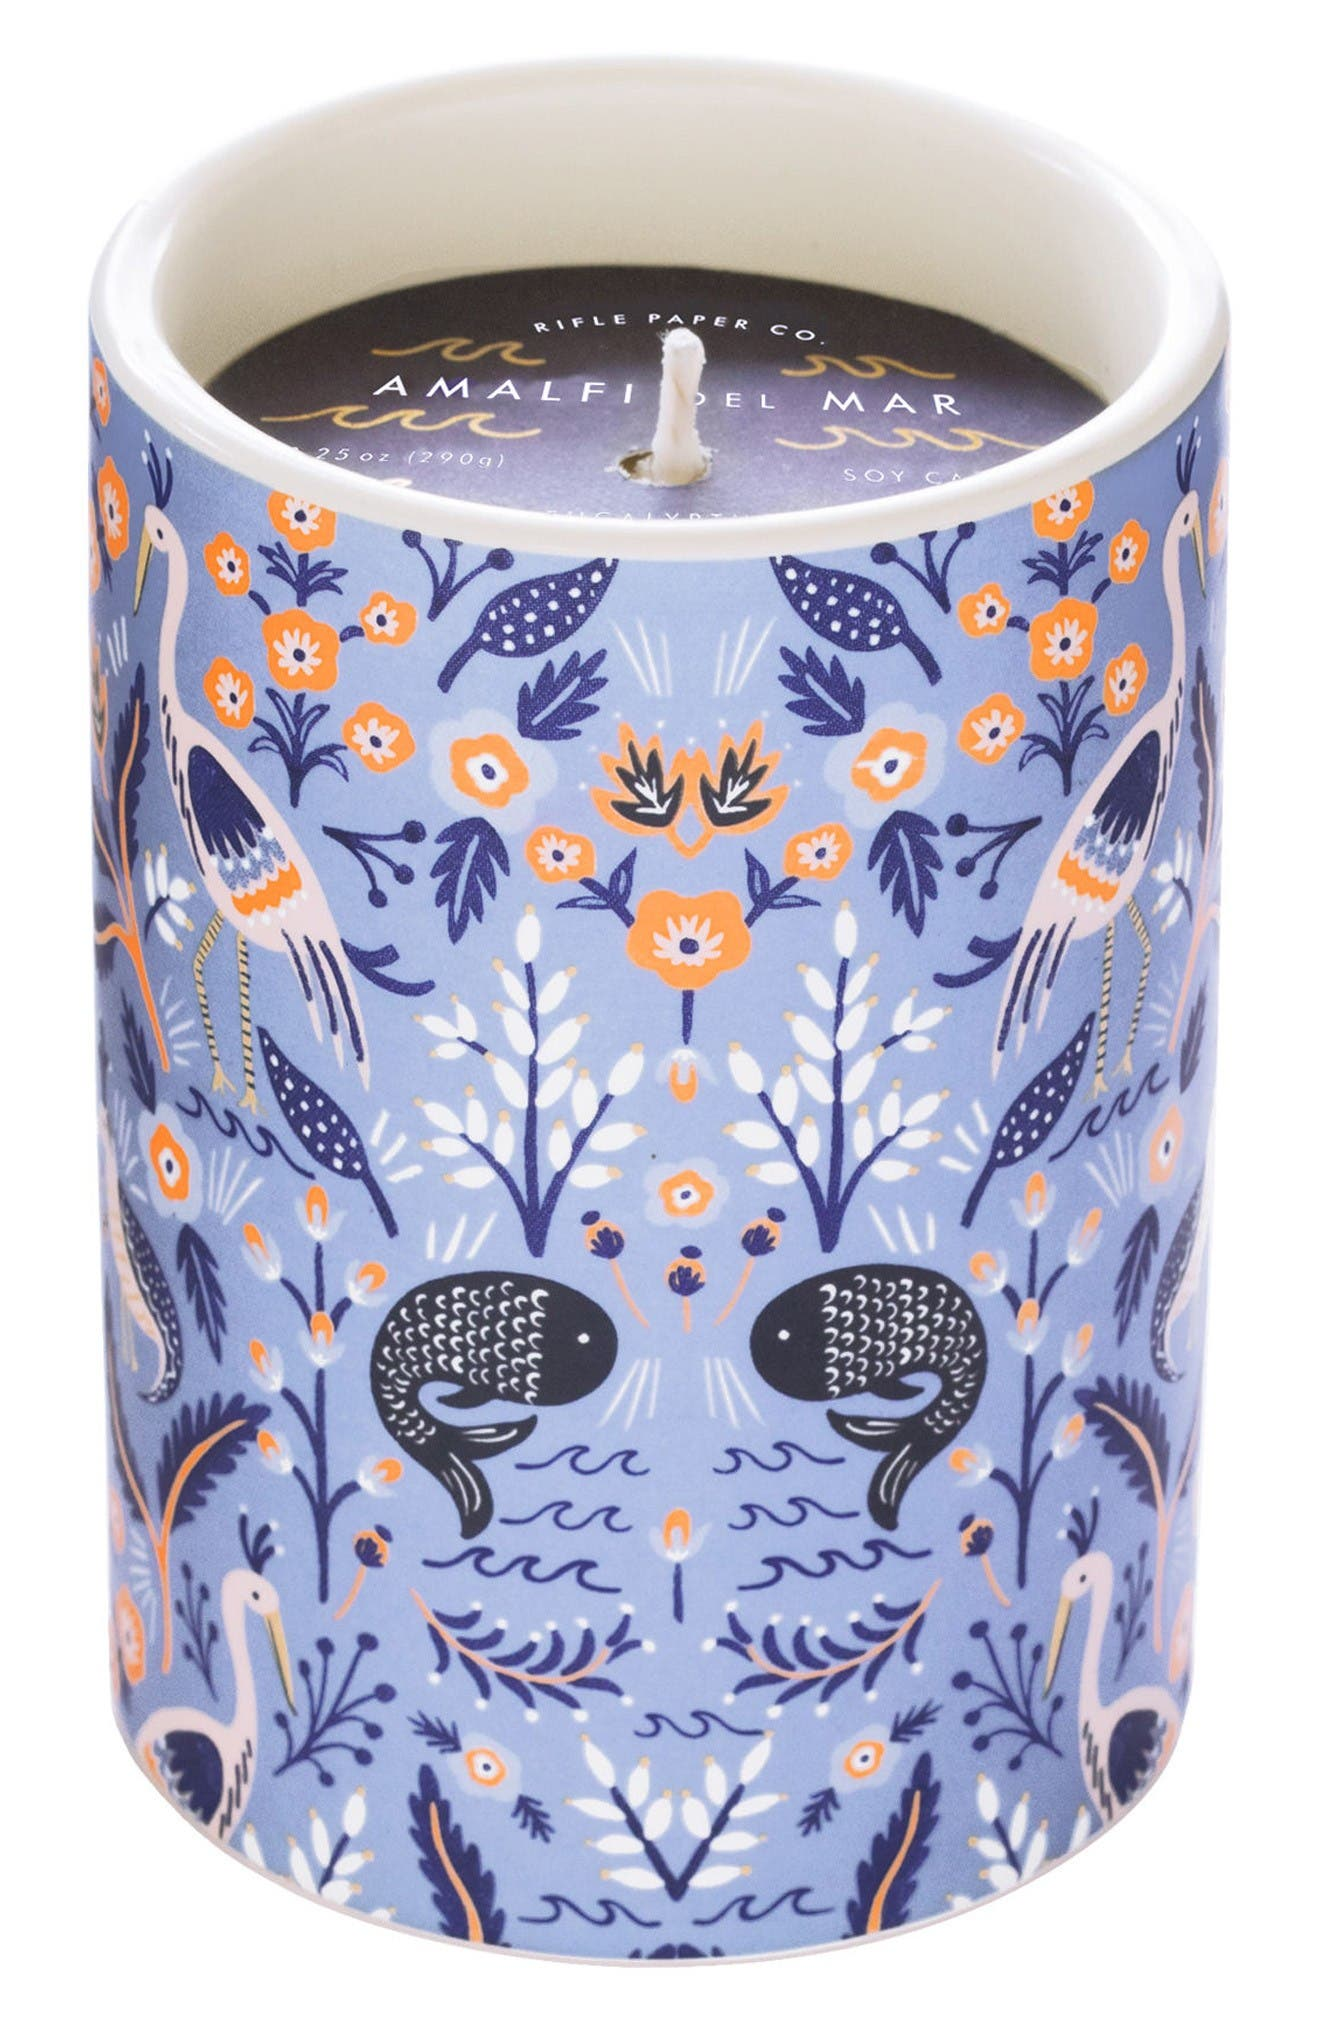 Alternate Image 1 Selected - Rifle Paper Co. Scented Ceramic Jar Candle